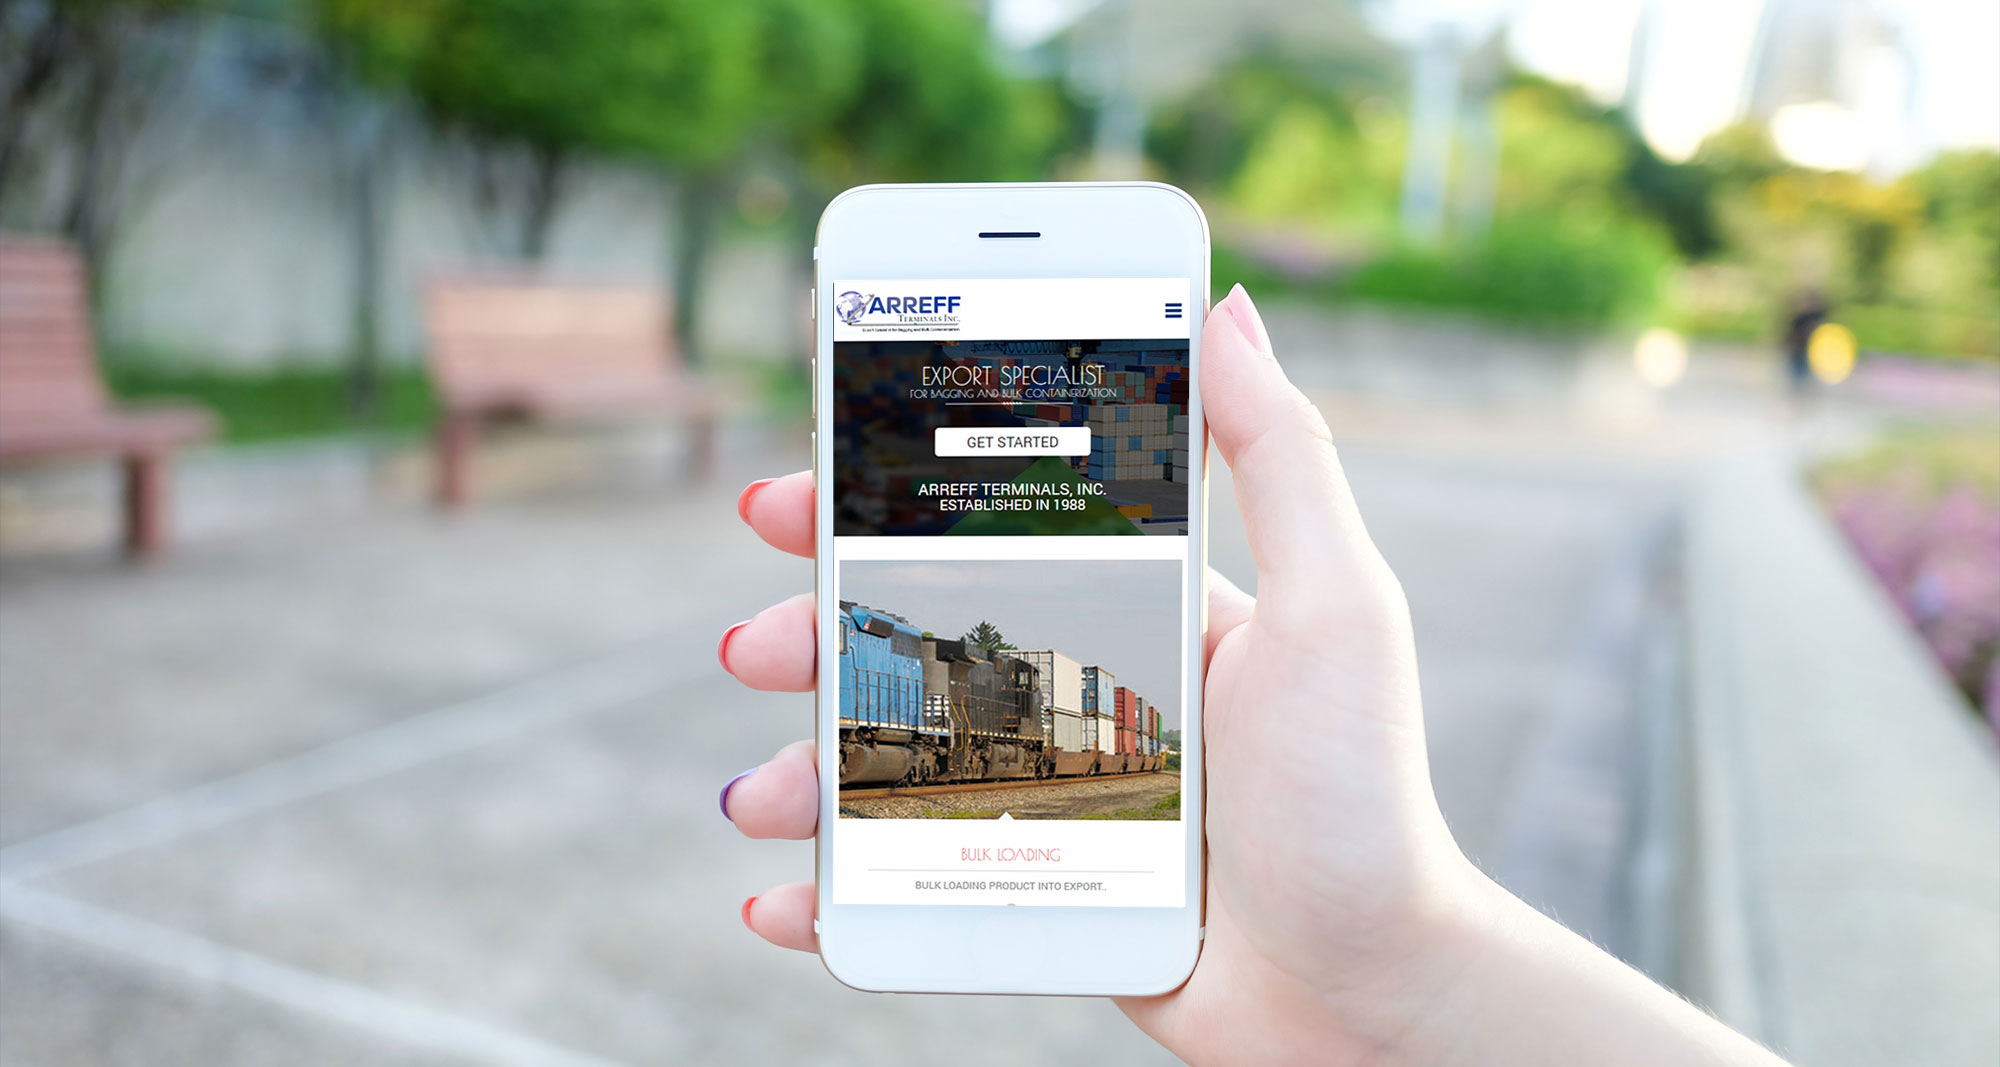 Arreff Terminals Inc. Immaculate Mobile Responsive Site